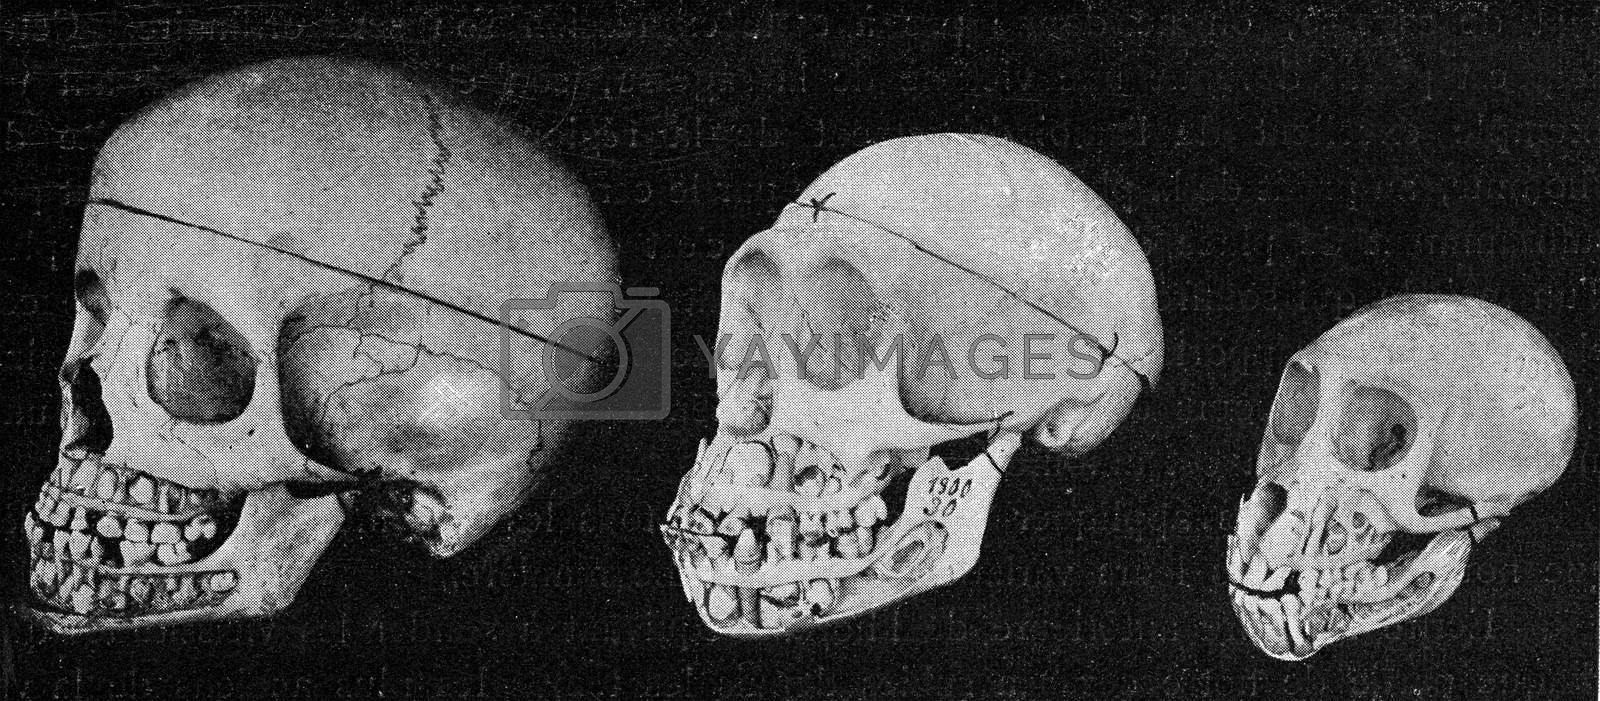 Skull of the man, the chimpanze and the Inuus, with the jaws cut by Morphart